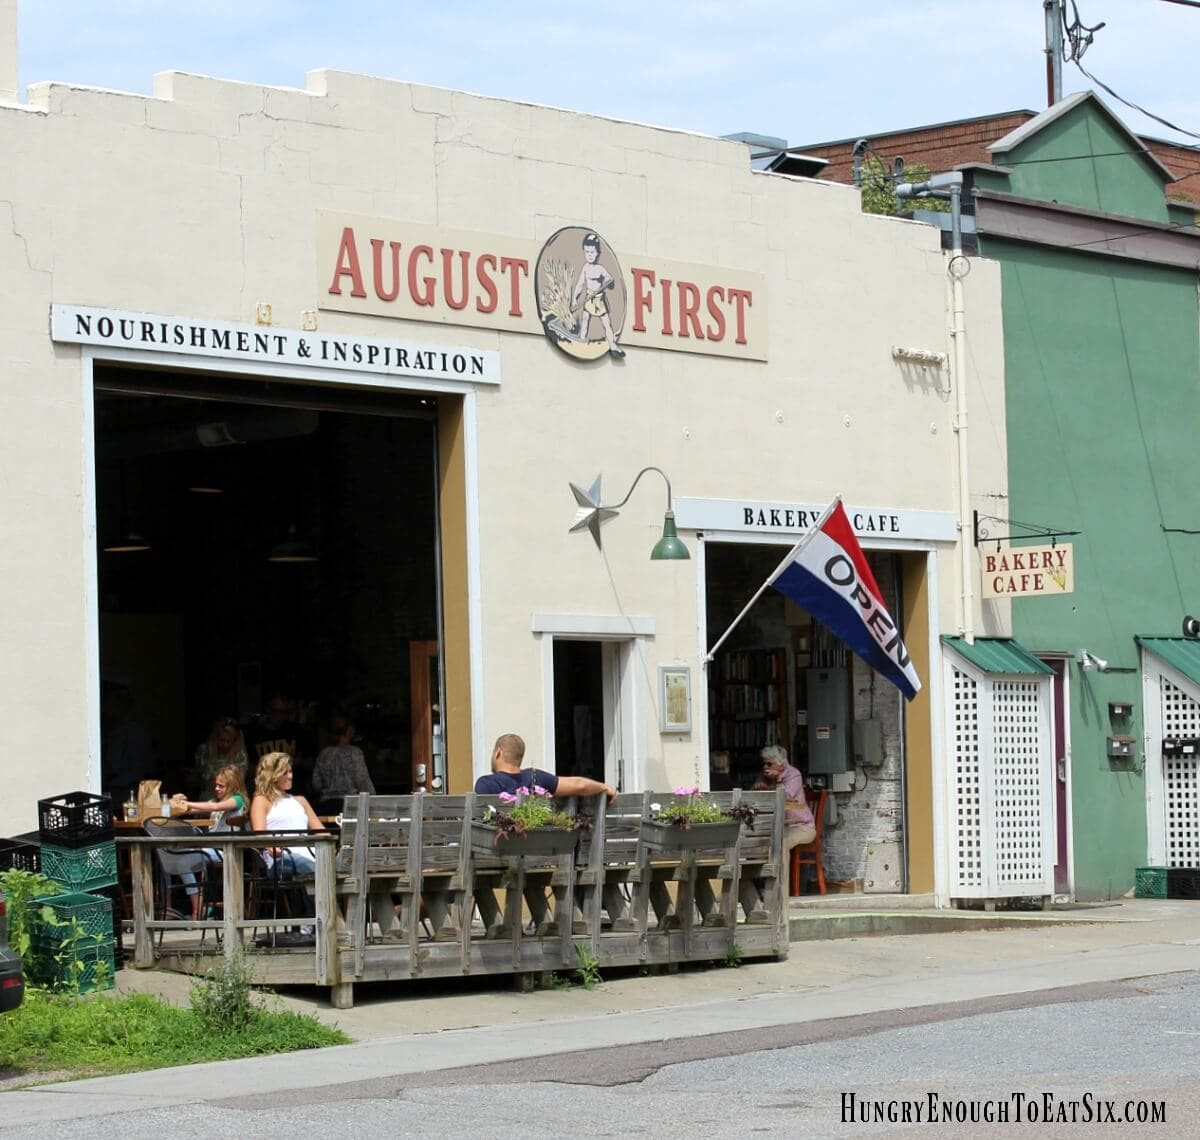 Our second stop on the King Arthur Flour Vermont Bakery Tour: August First Bakery in downtown Burlington!